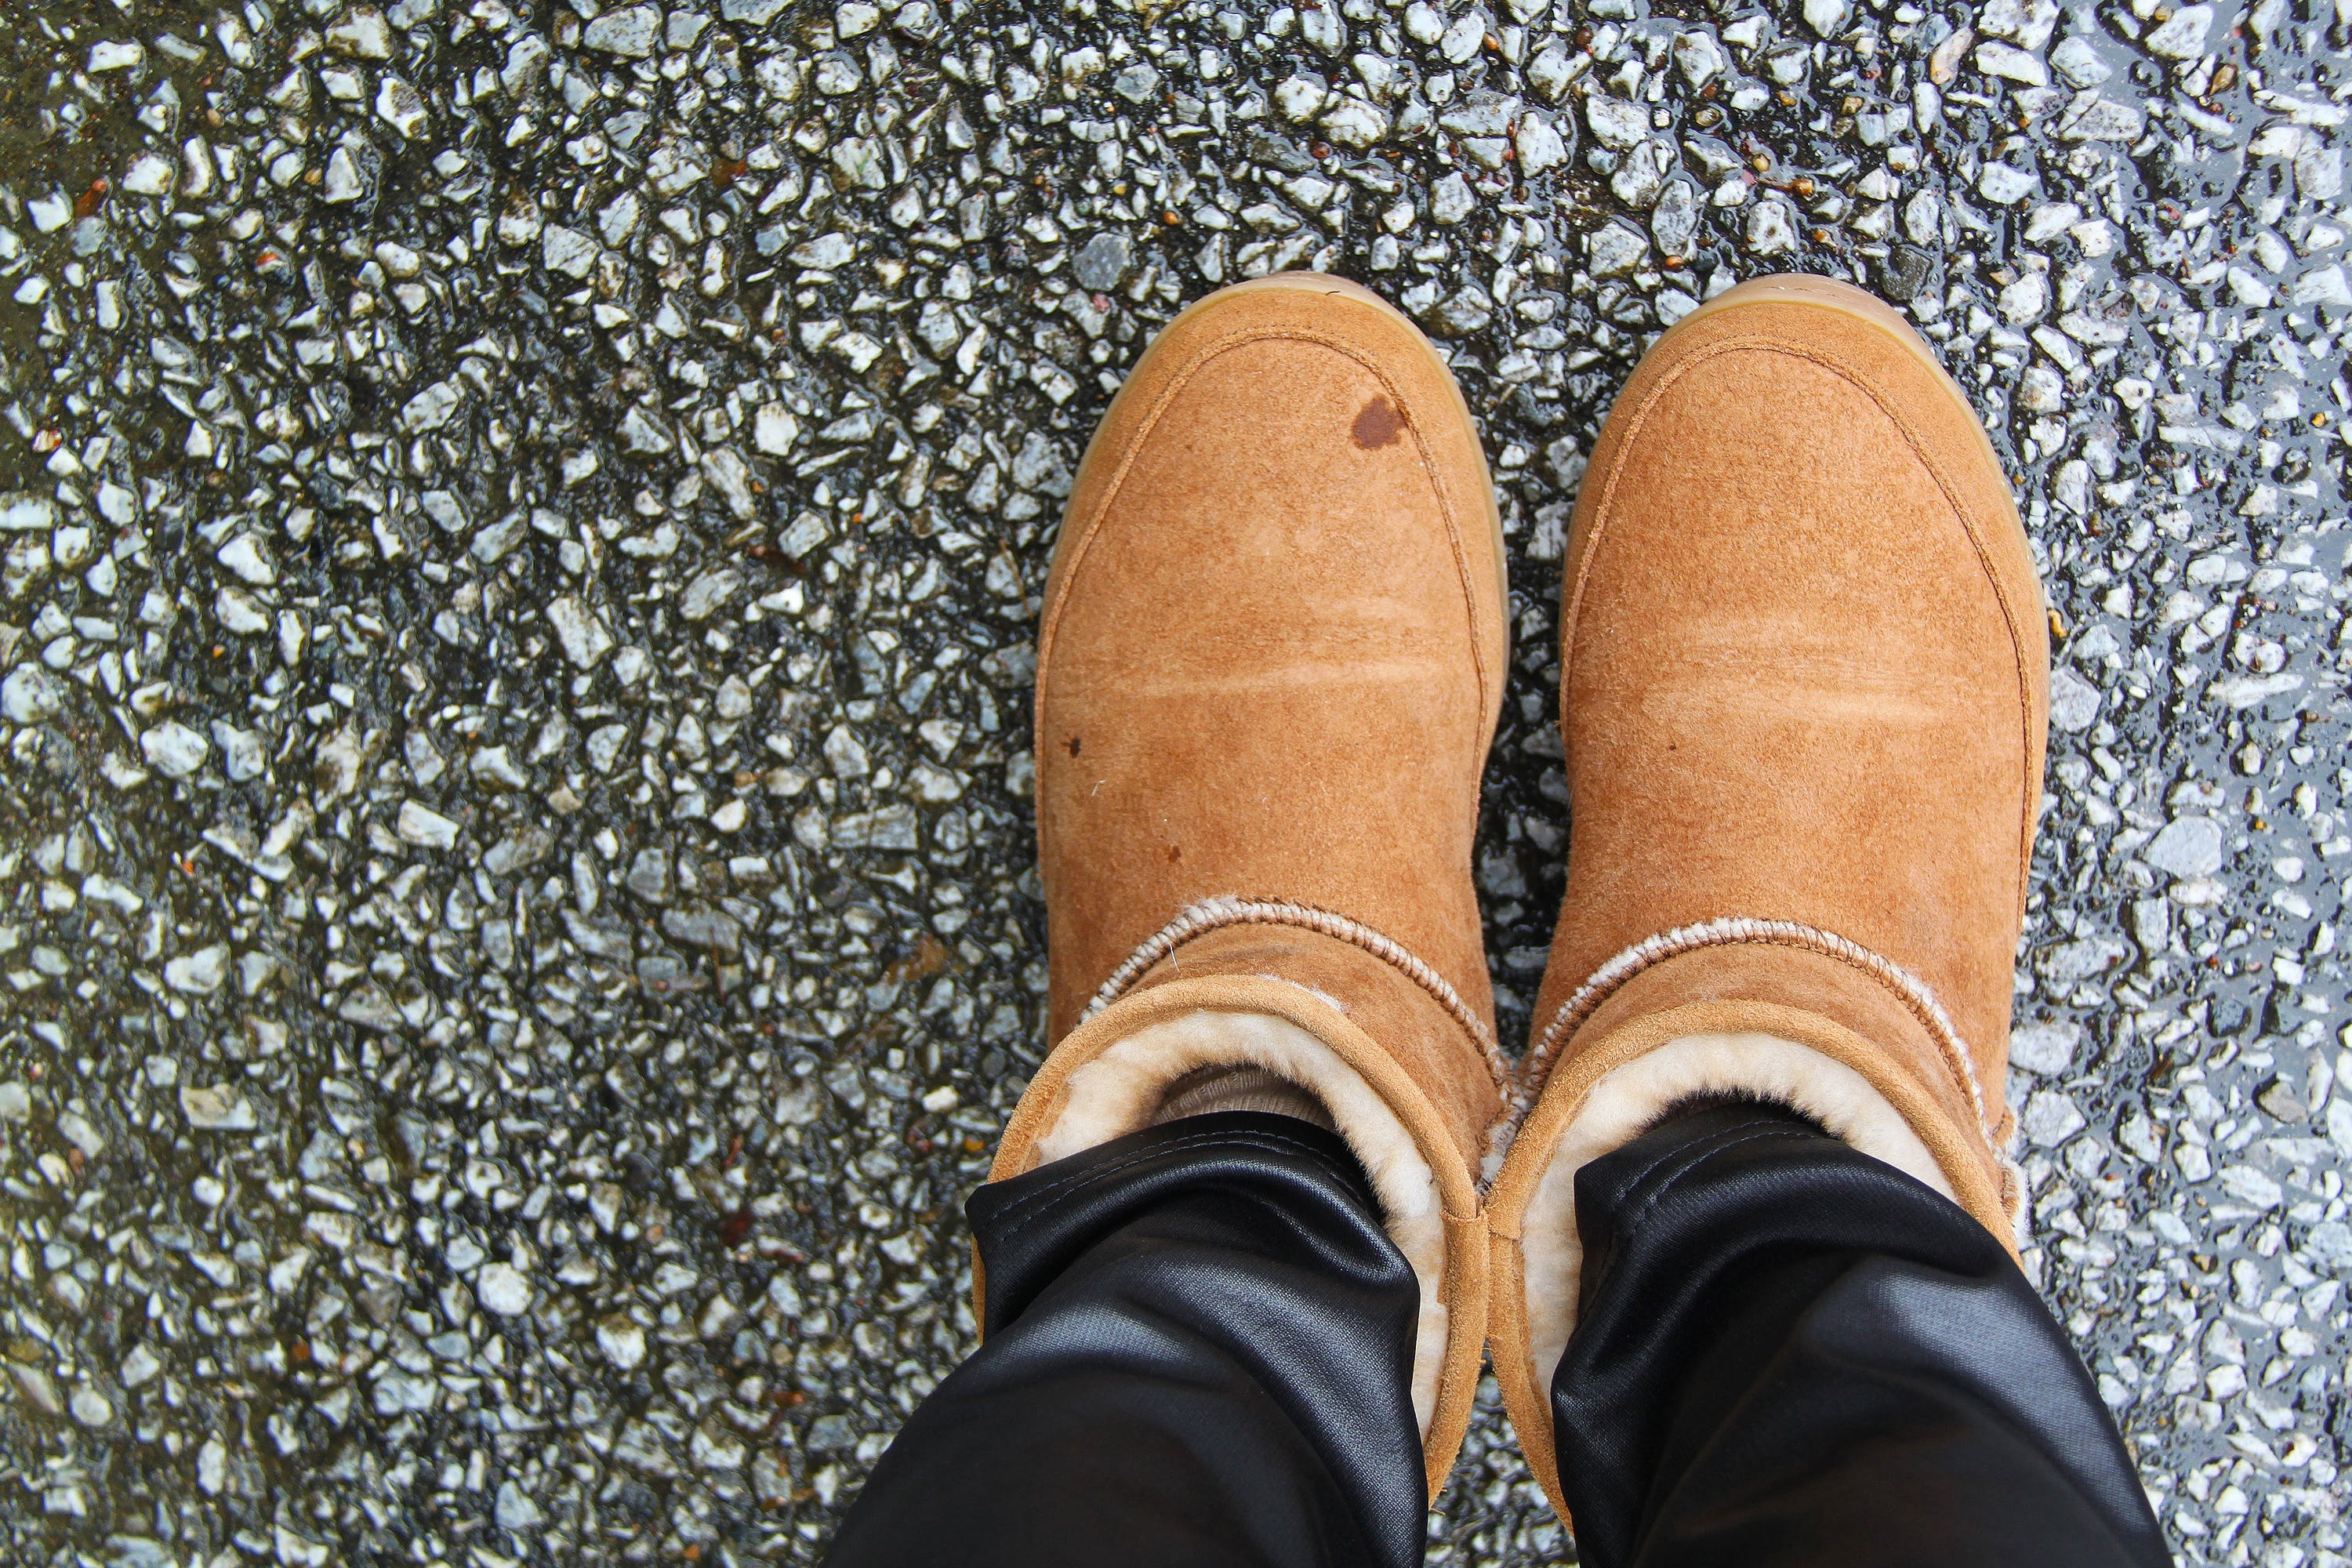 boots, close-up, cold